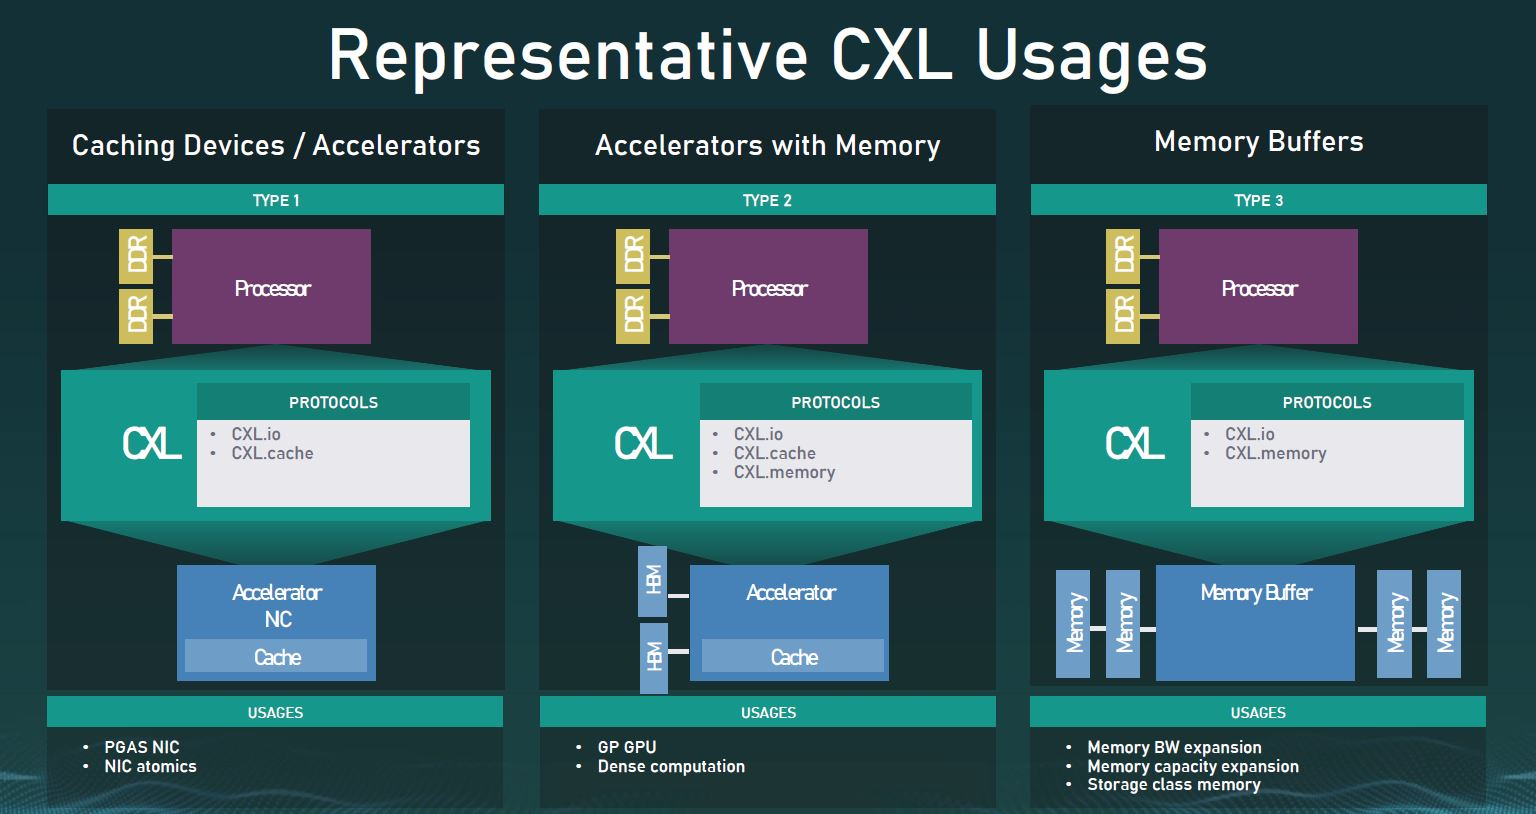 CXL 1.0 And 1.1 Usages